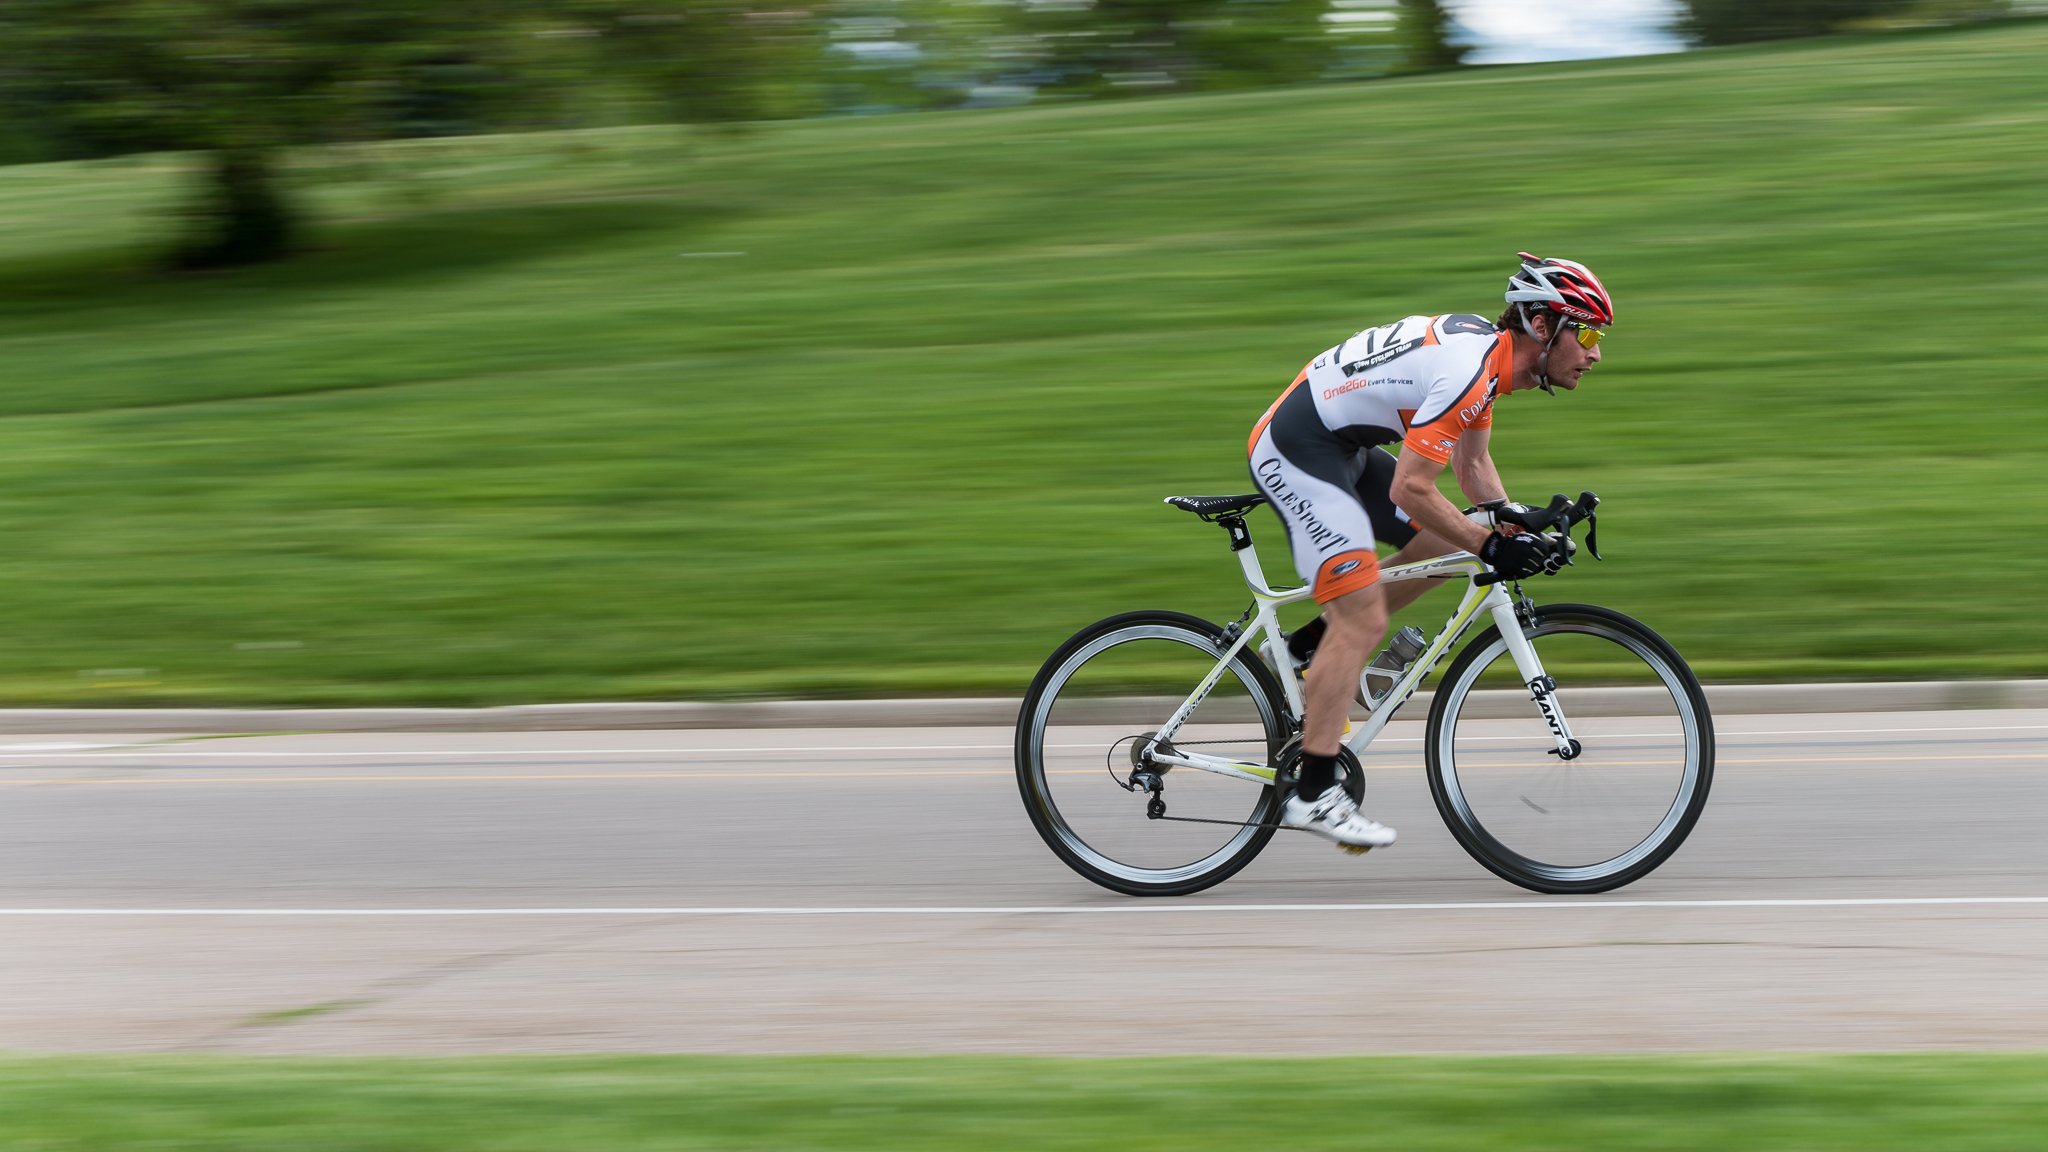 A panning image can be a great way to show speed